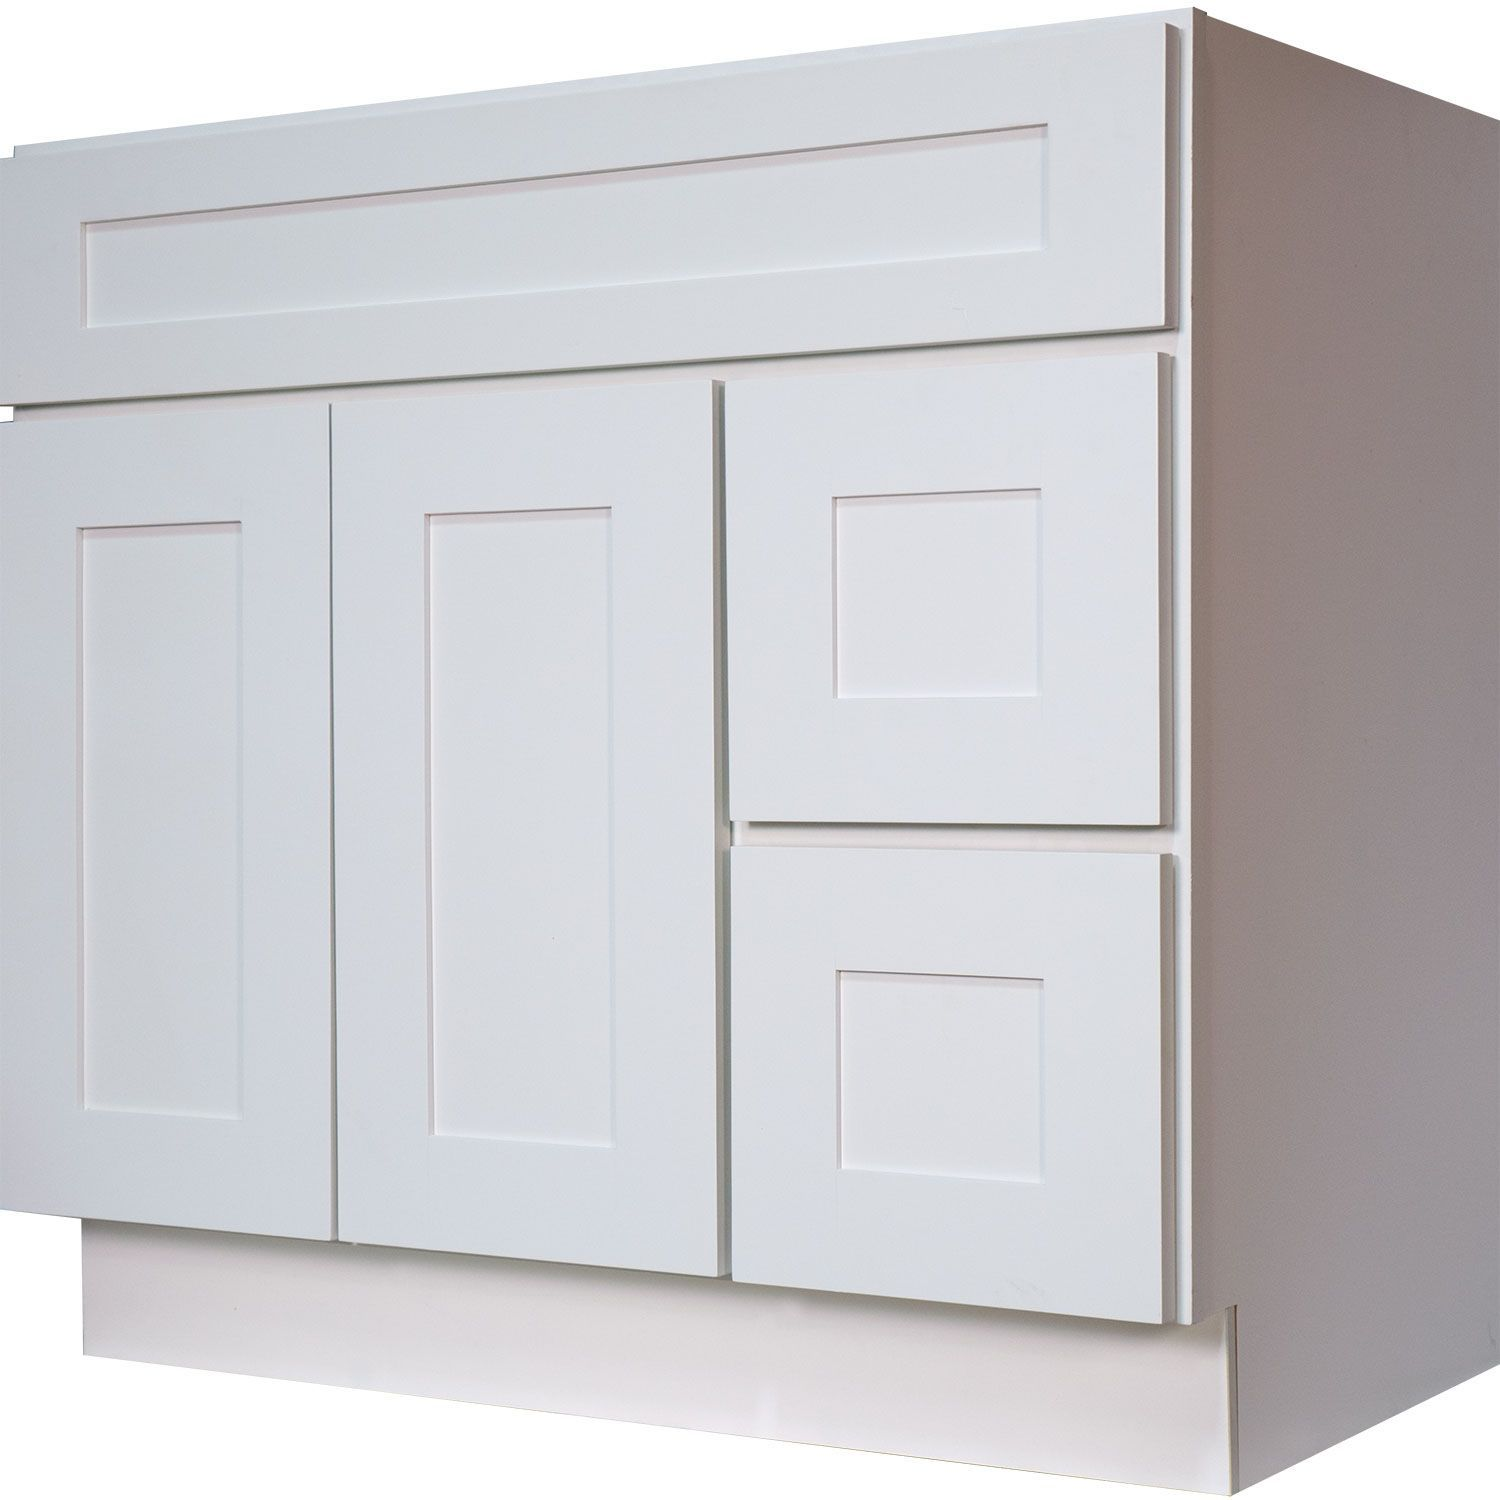 36 Inch Bathroom Vanity Single Sink Cabinet In Shaker White With Soft Close  Drawers